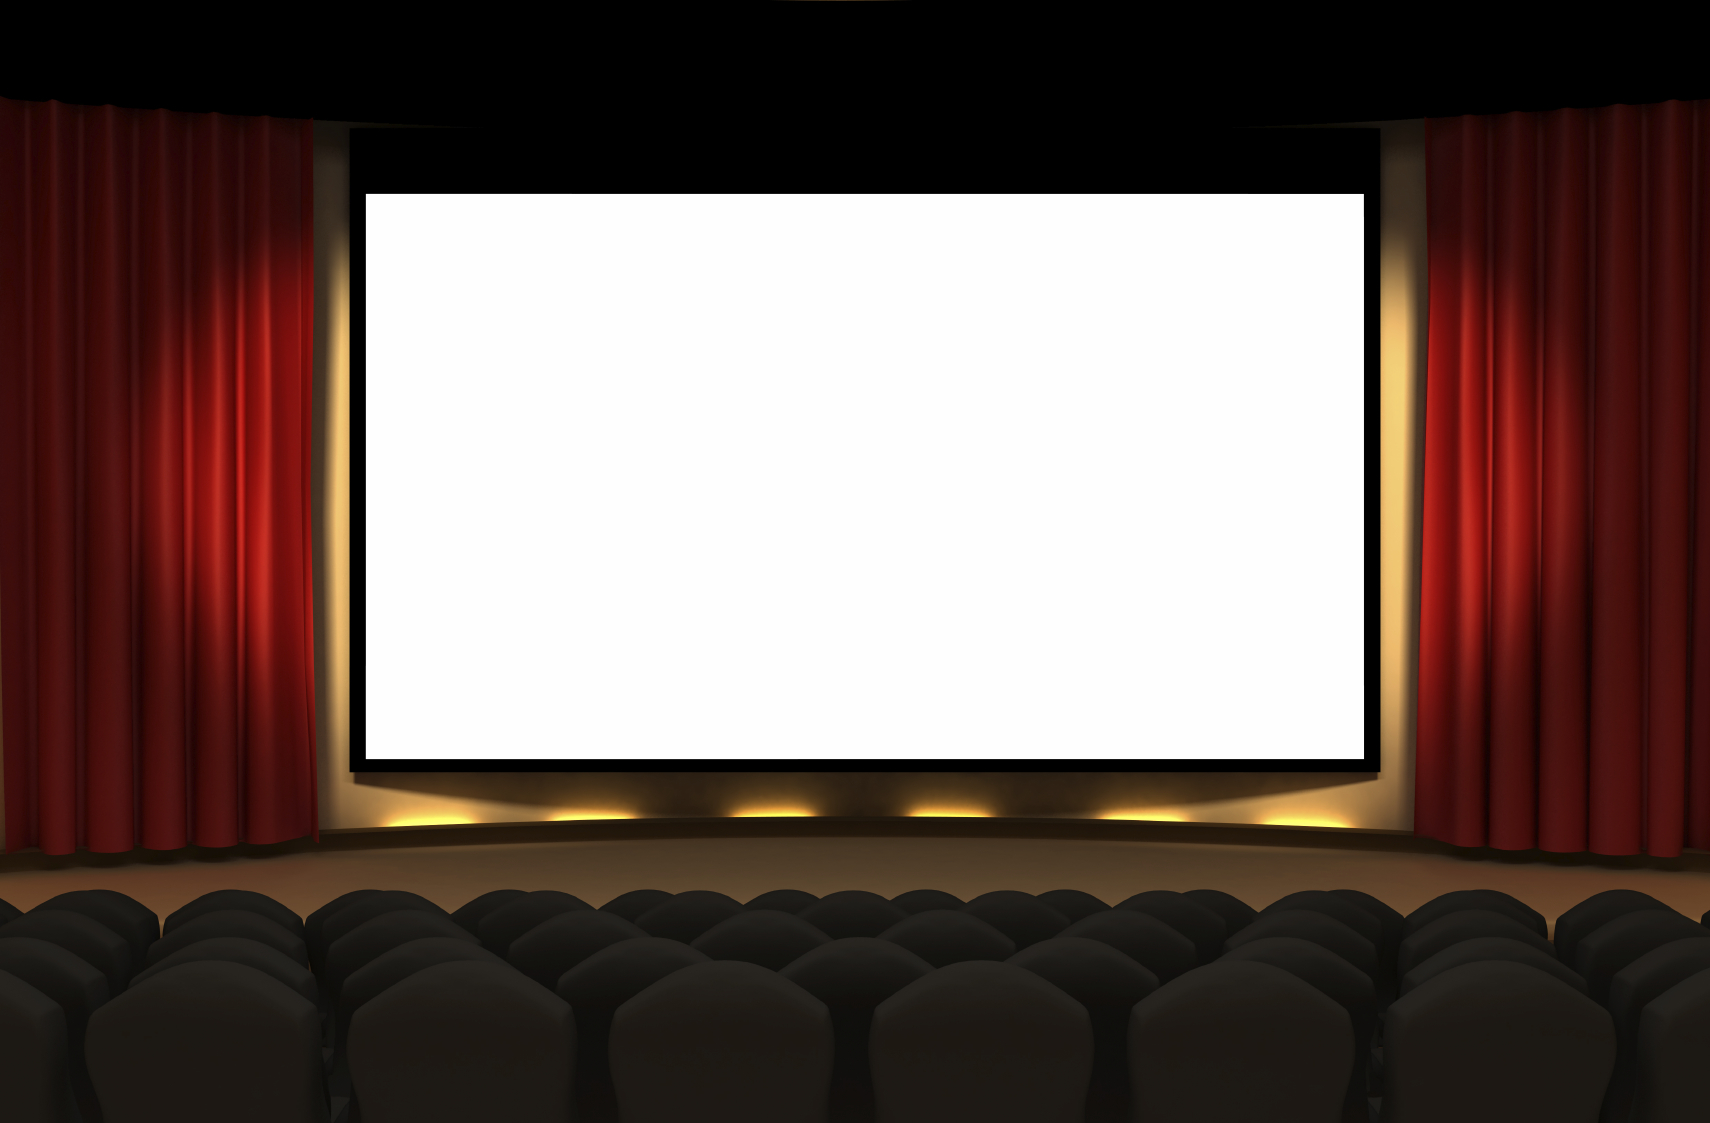 Theater Clipart Free Clipart .-Theater clipart free clipart .-18